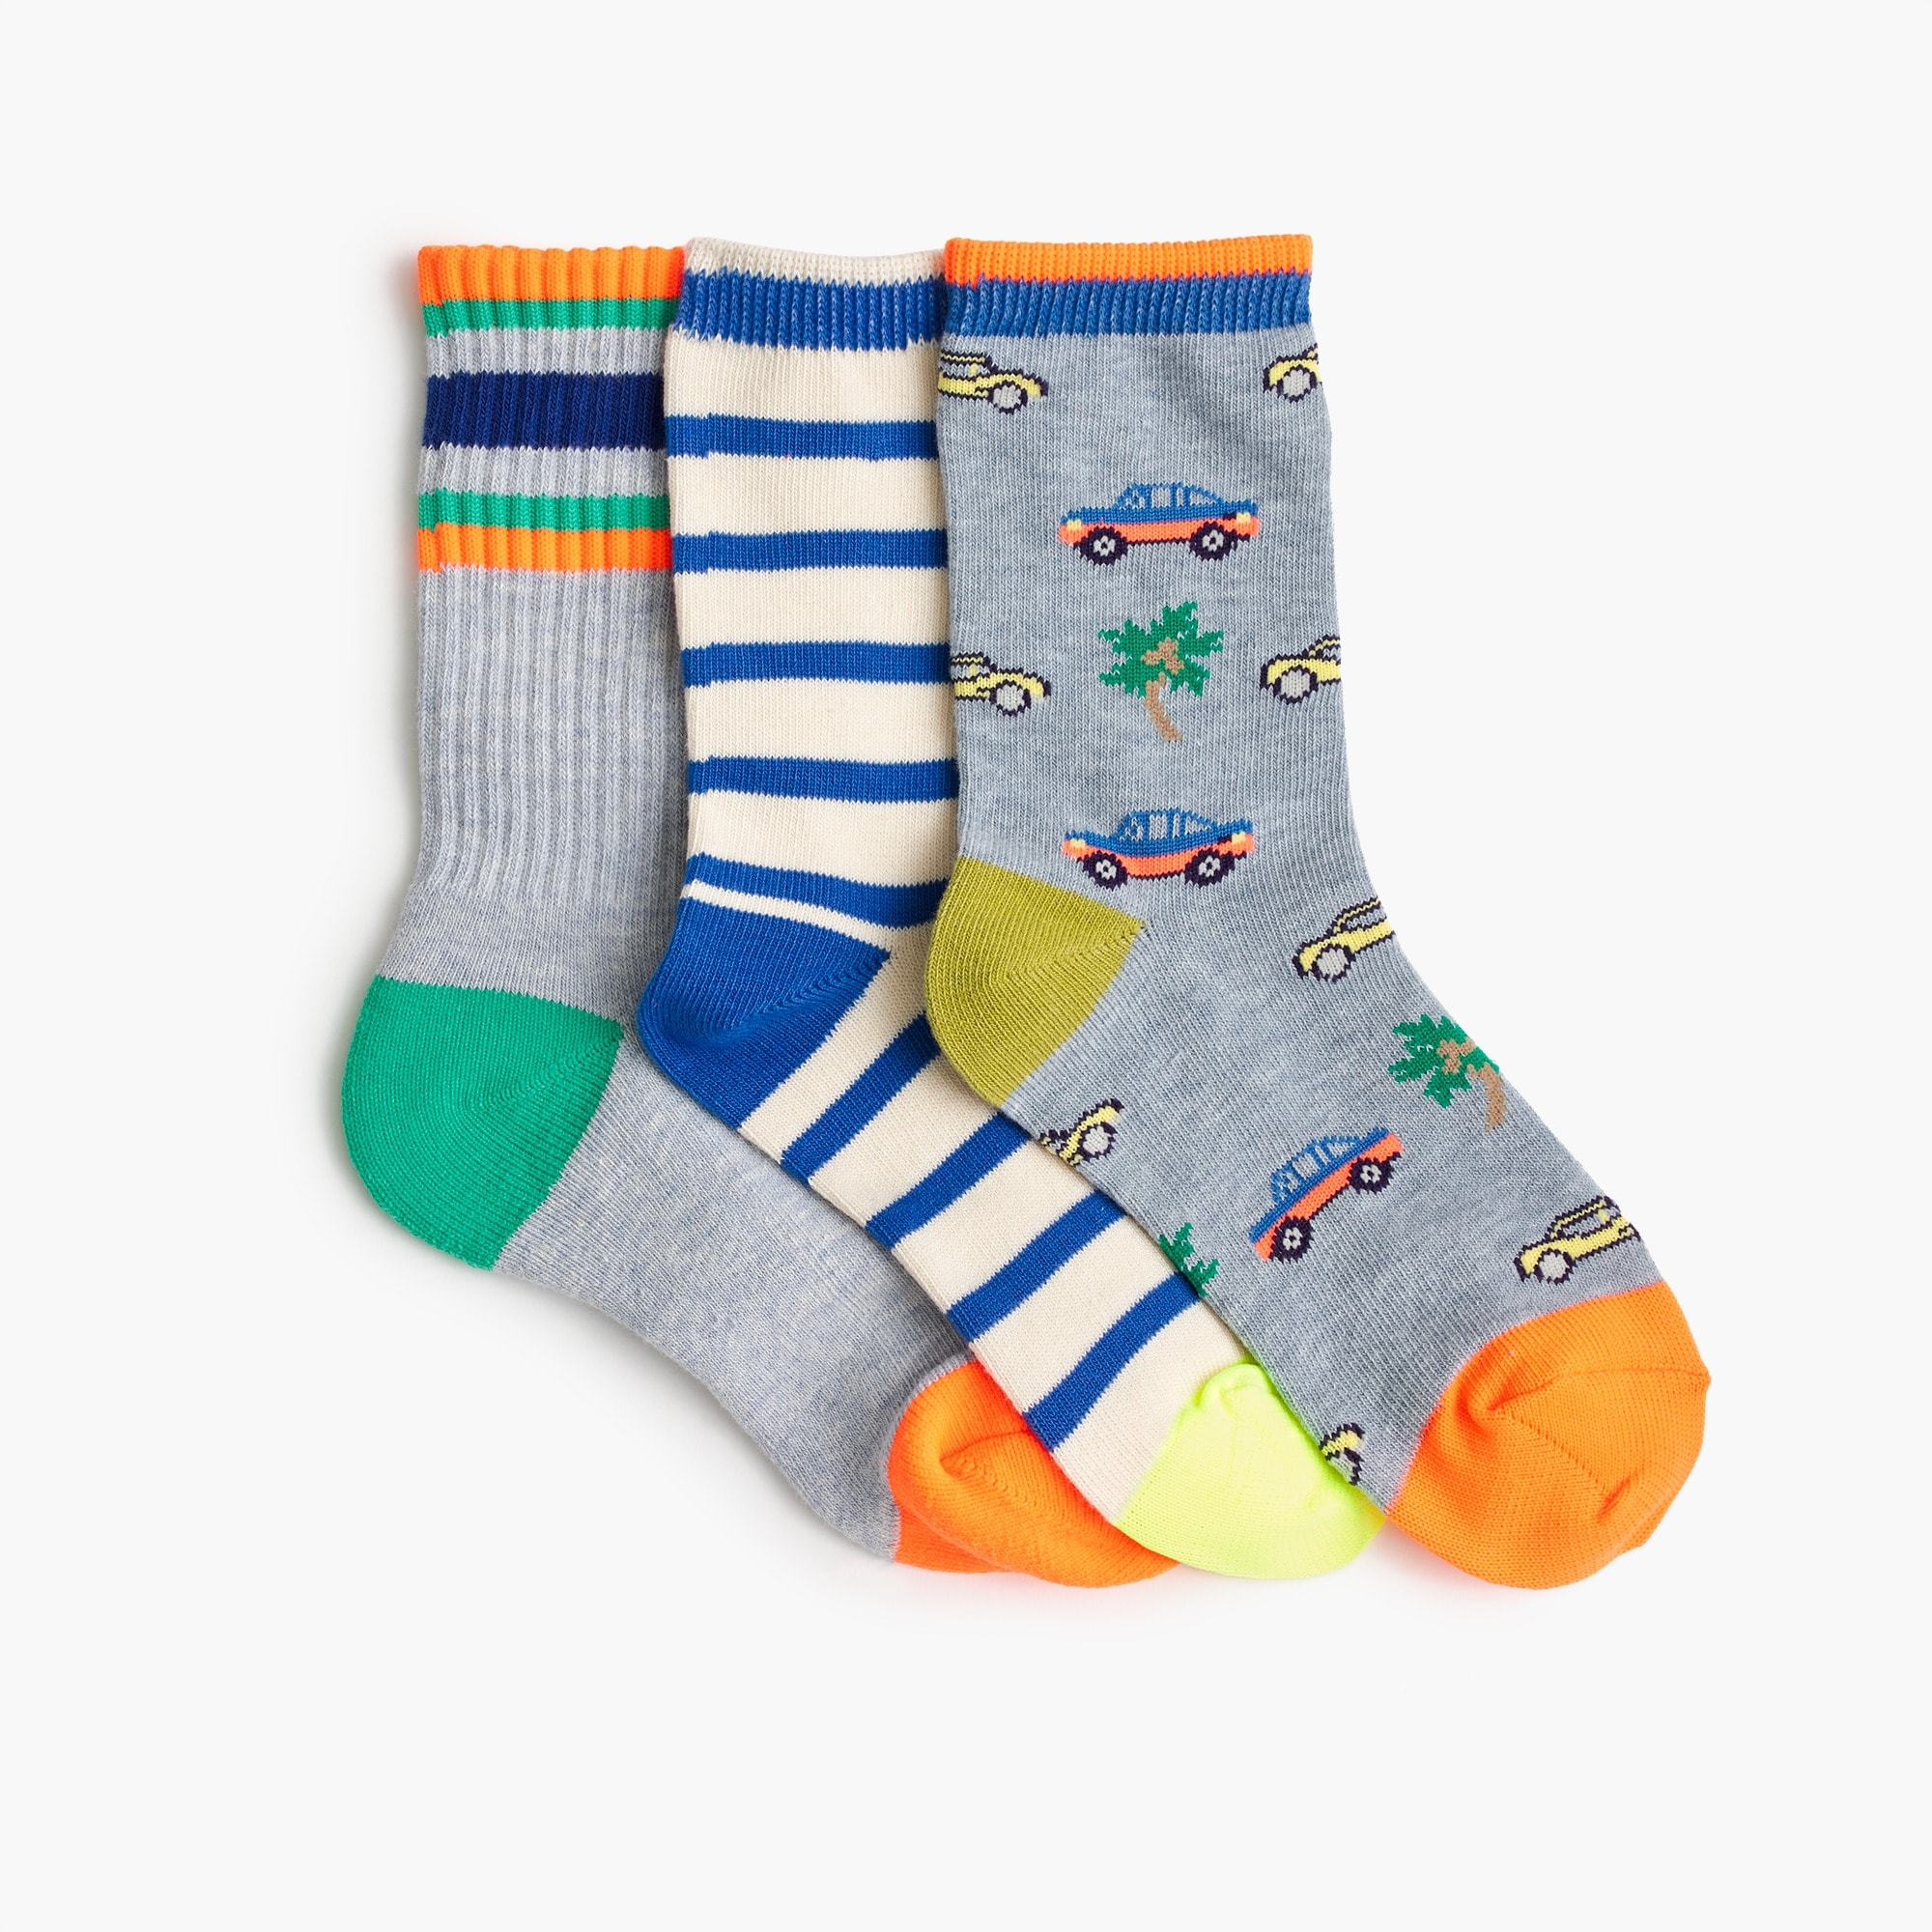 Boys' trouser socks three-pack in multi